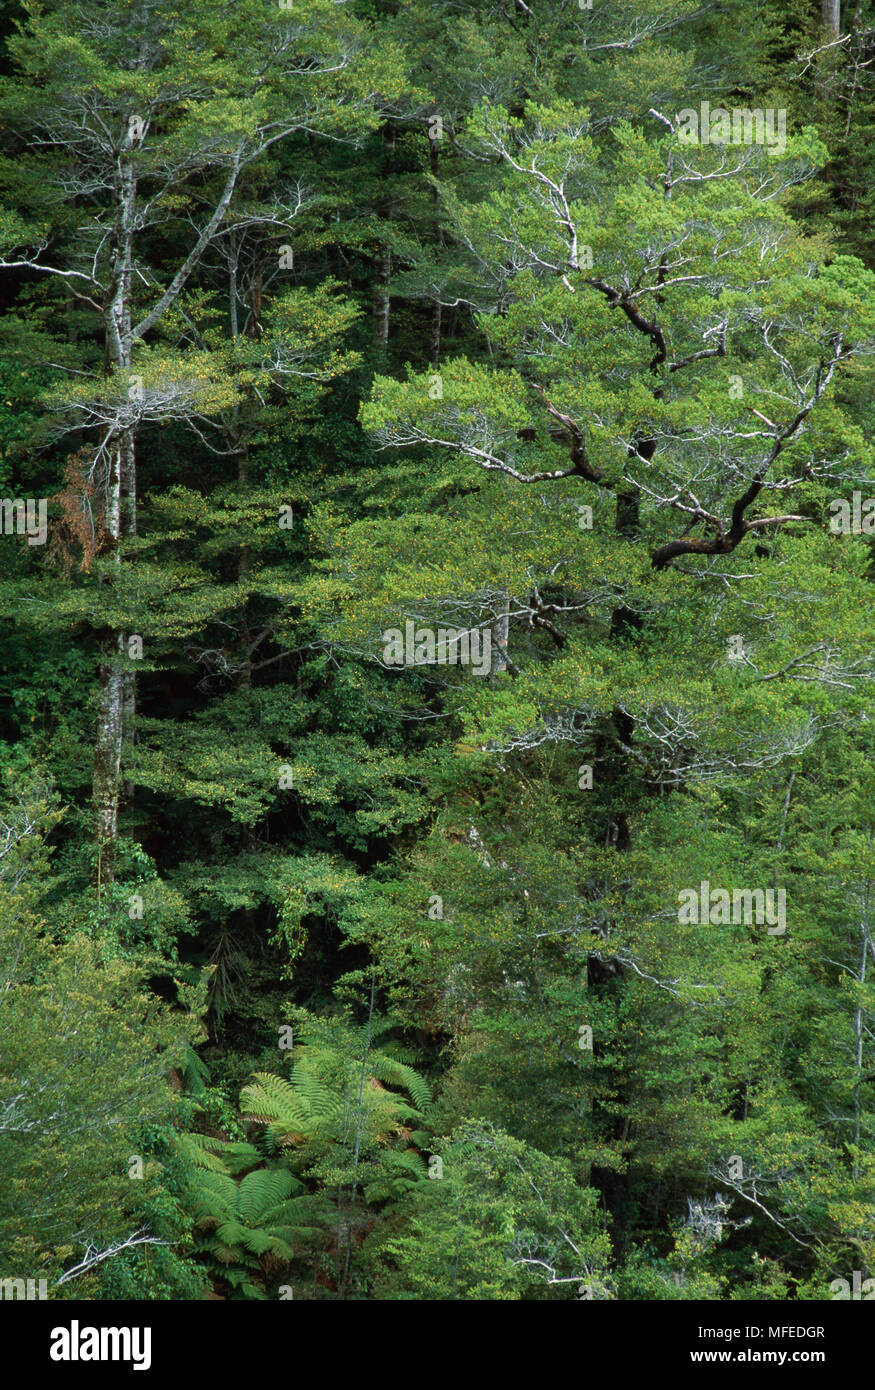 SILVER BEECH TREES Nothofagus menziesii New Zealand Stock Photo ...